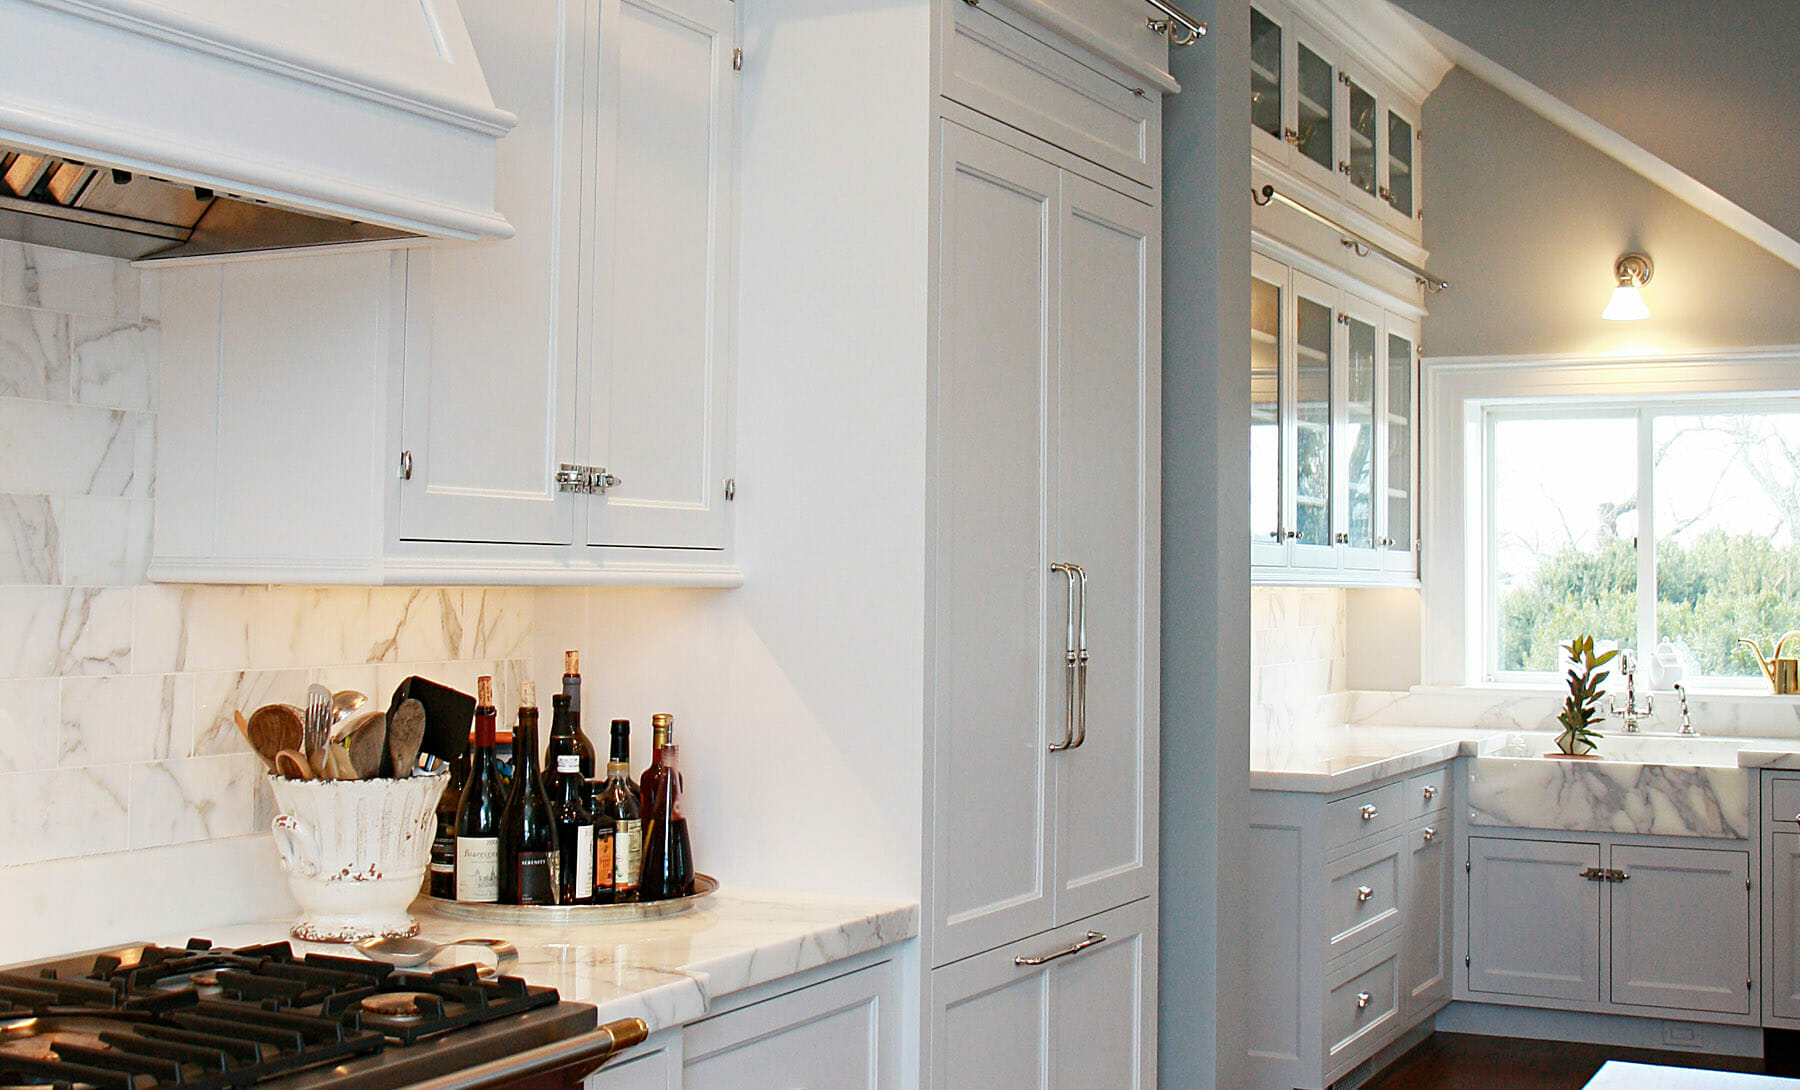 GME Builders designs and constructs open layout kitchens with lots of natural sunlight in Keswick, Crozet, Ivy and Charlottesville.